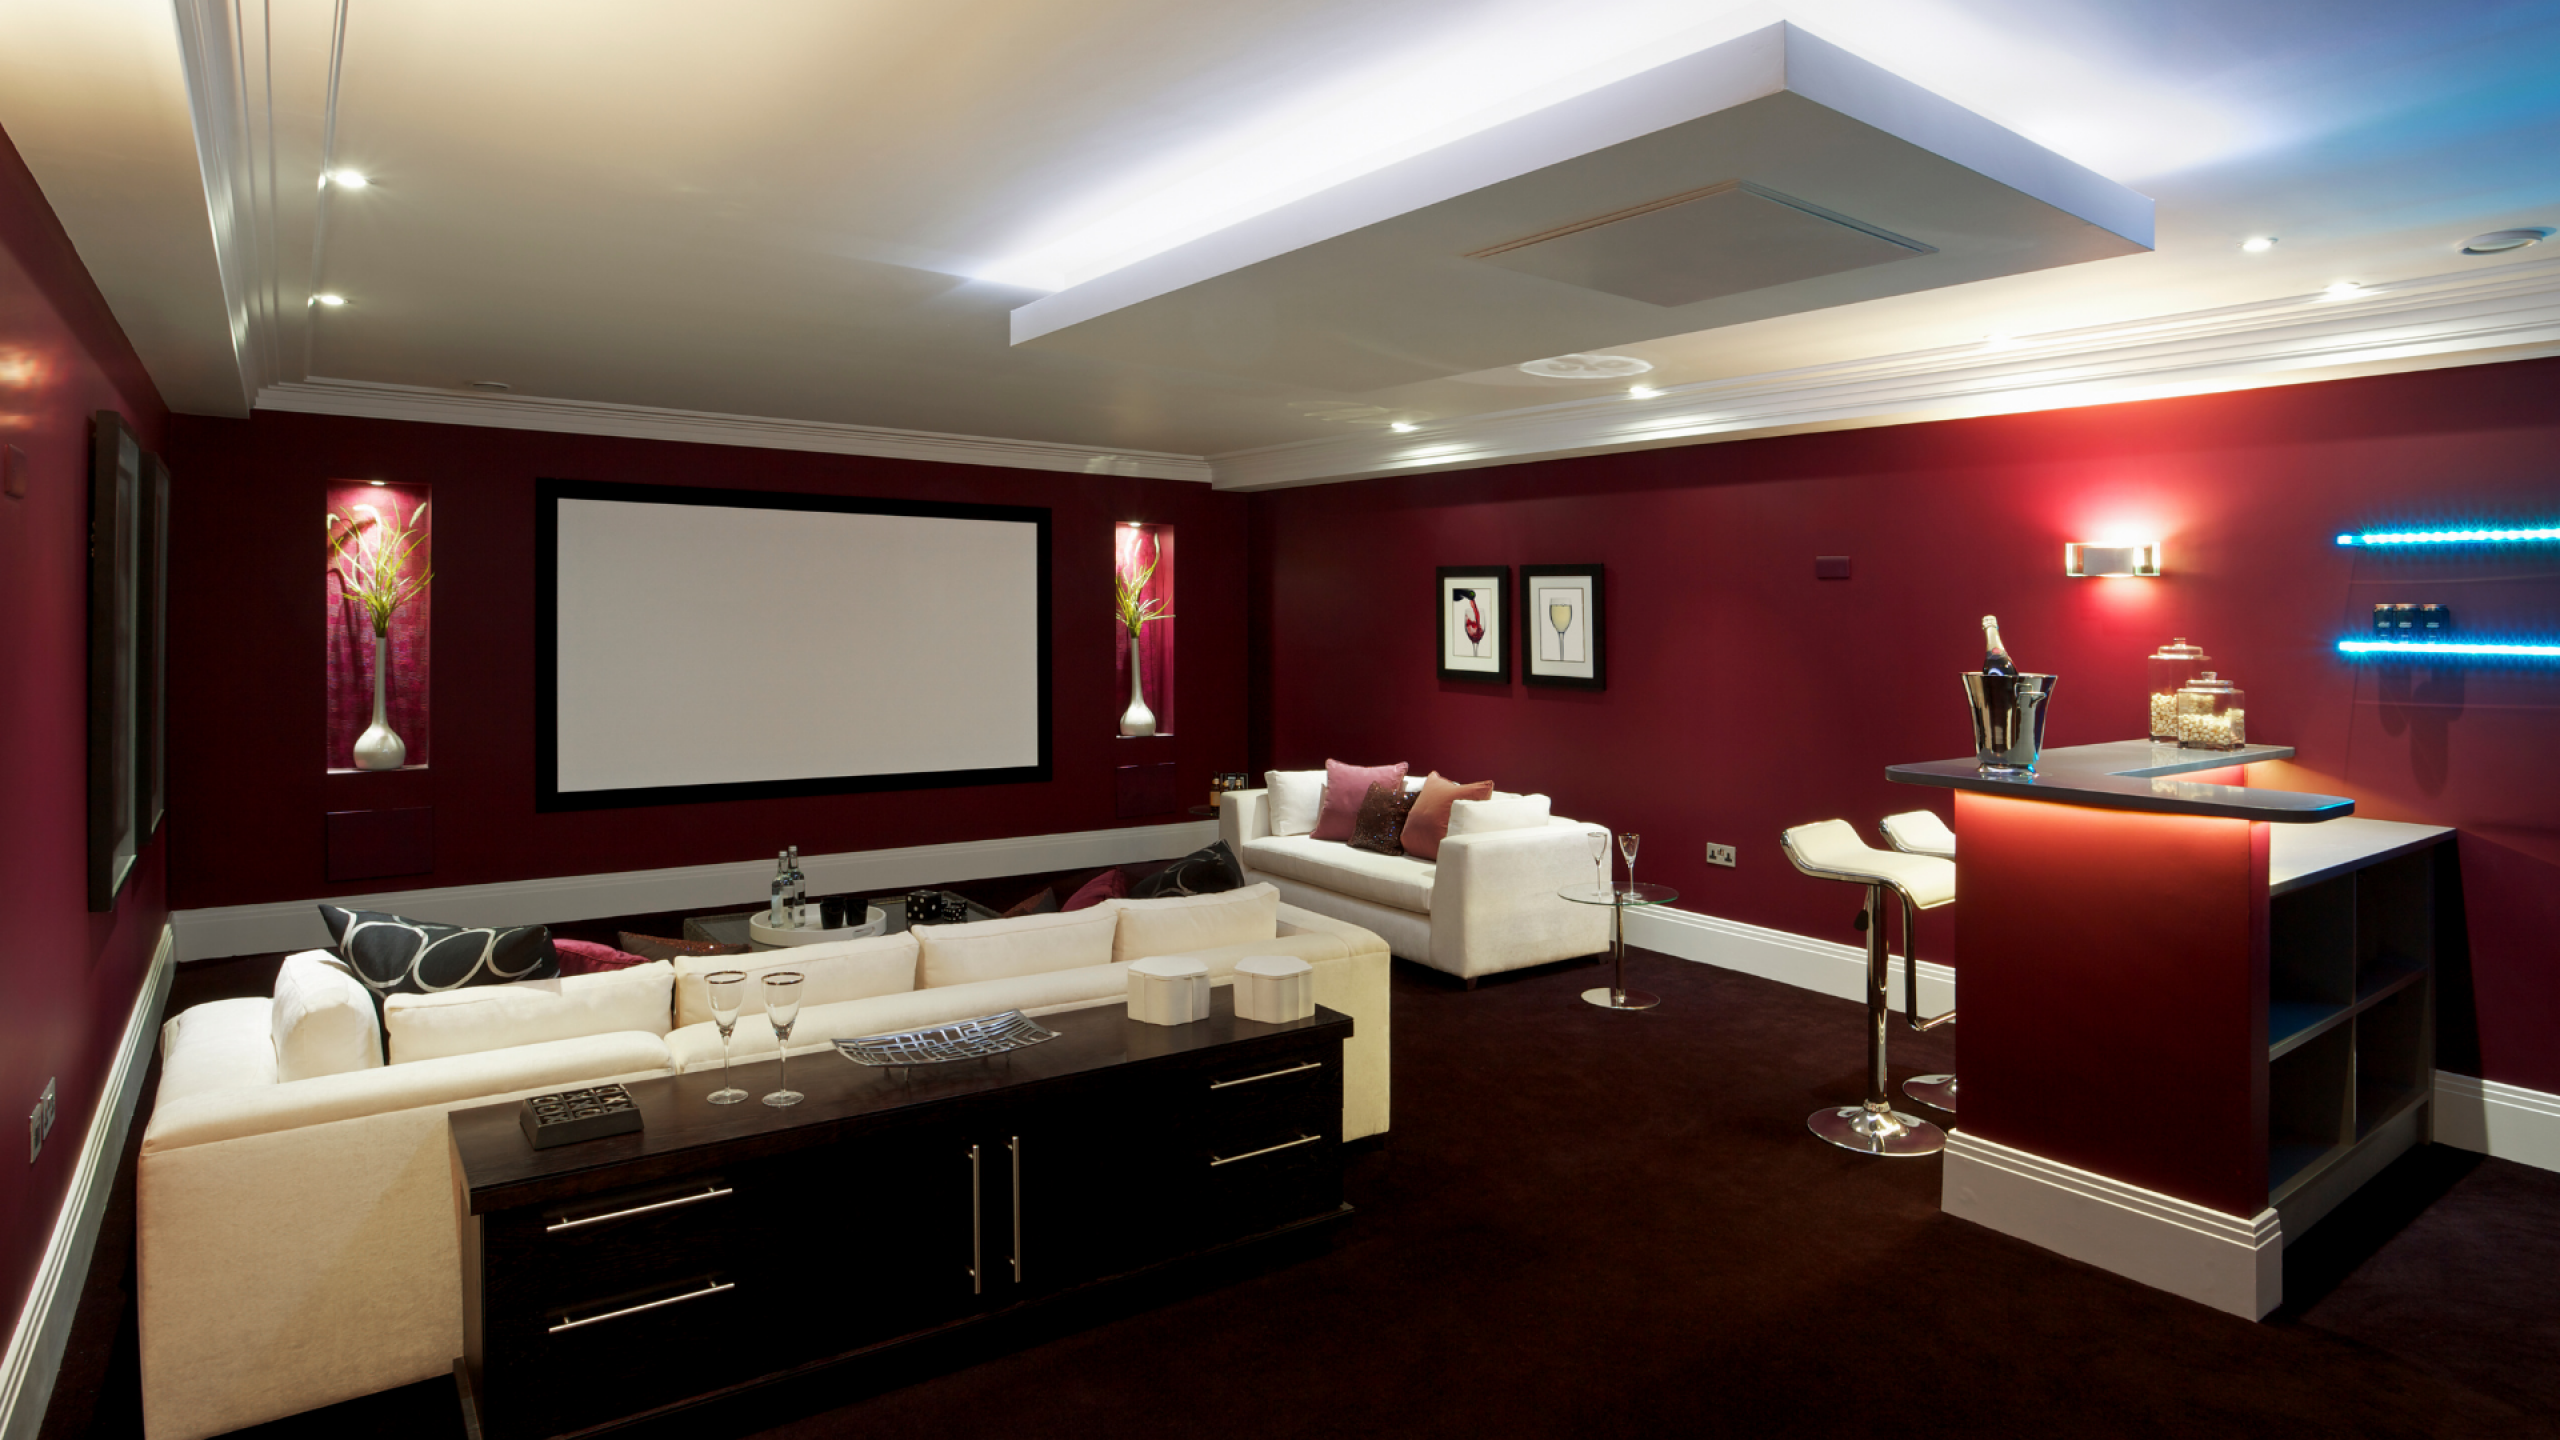 Cinema Room - Red walls with white furniture and small cocktail bar in corner